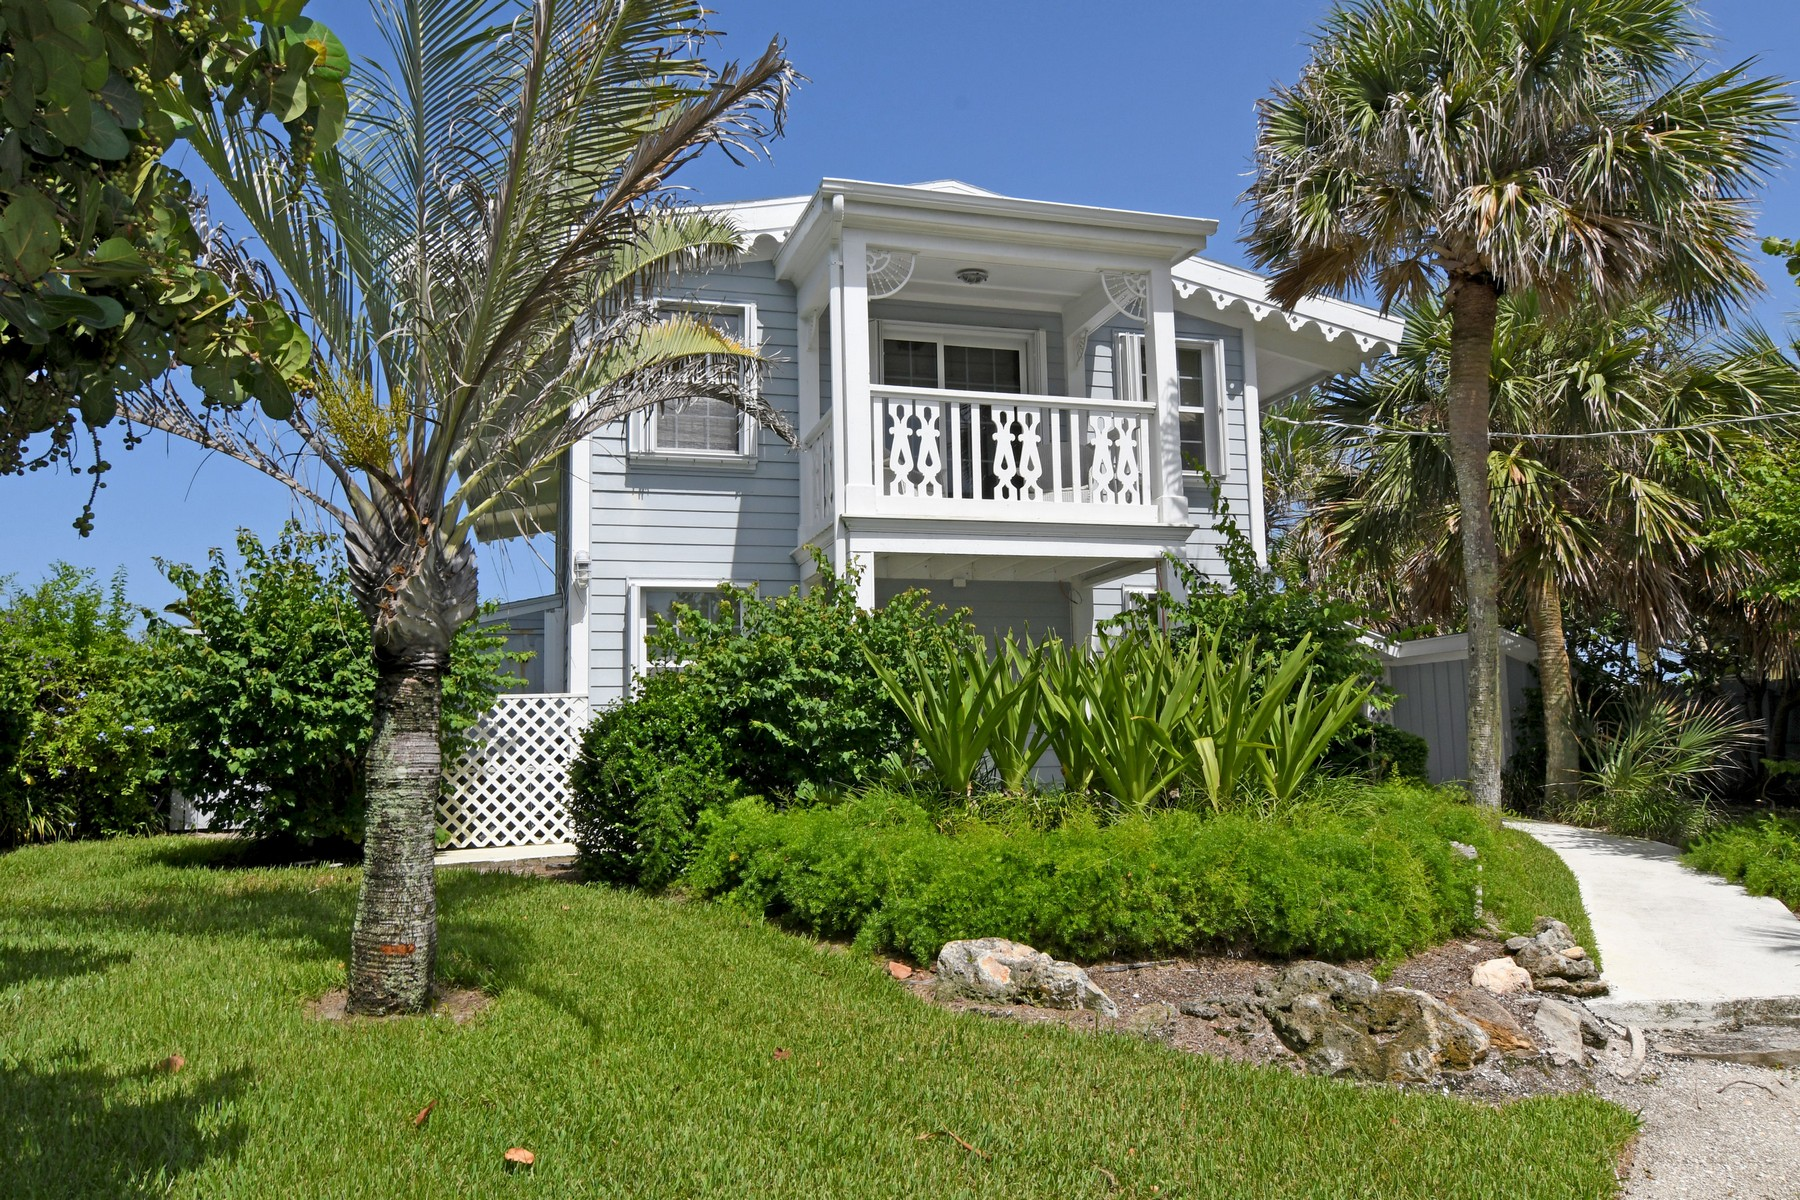 Single Family Home for Sale at Magnificent Key West Style Cottage 1801 E Barefoot Place, Vero Beach, Florida, 32963 United States